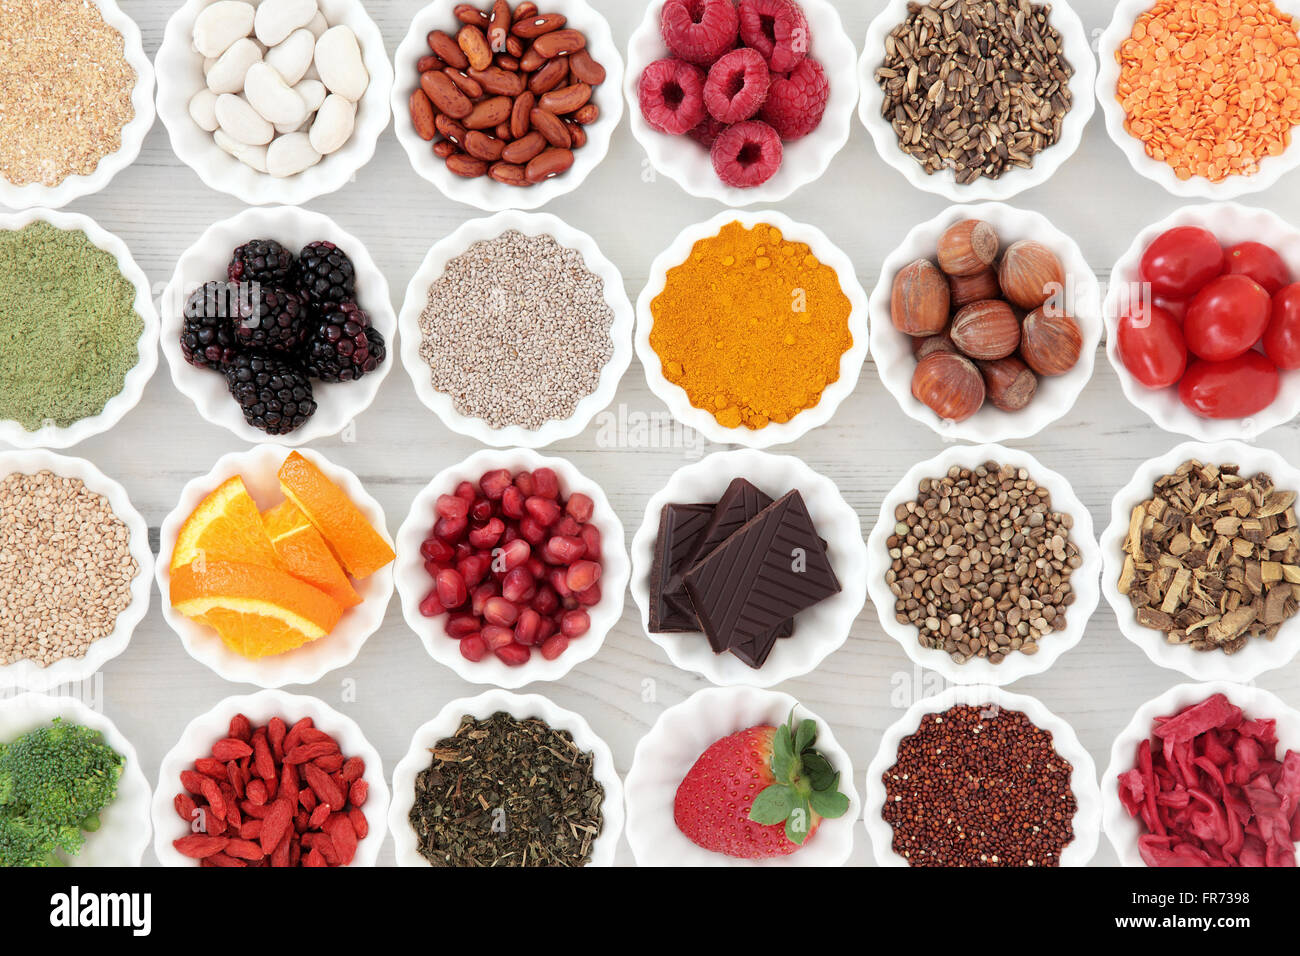 Super health food selection in porcelain crinkle bowls over distressed wooden background. High in vitamins and antioxidants. - Stock Image